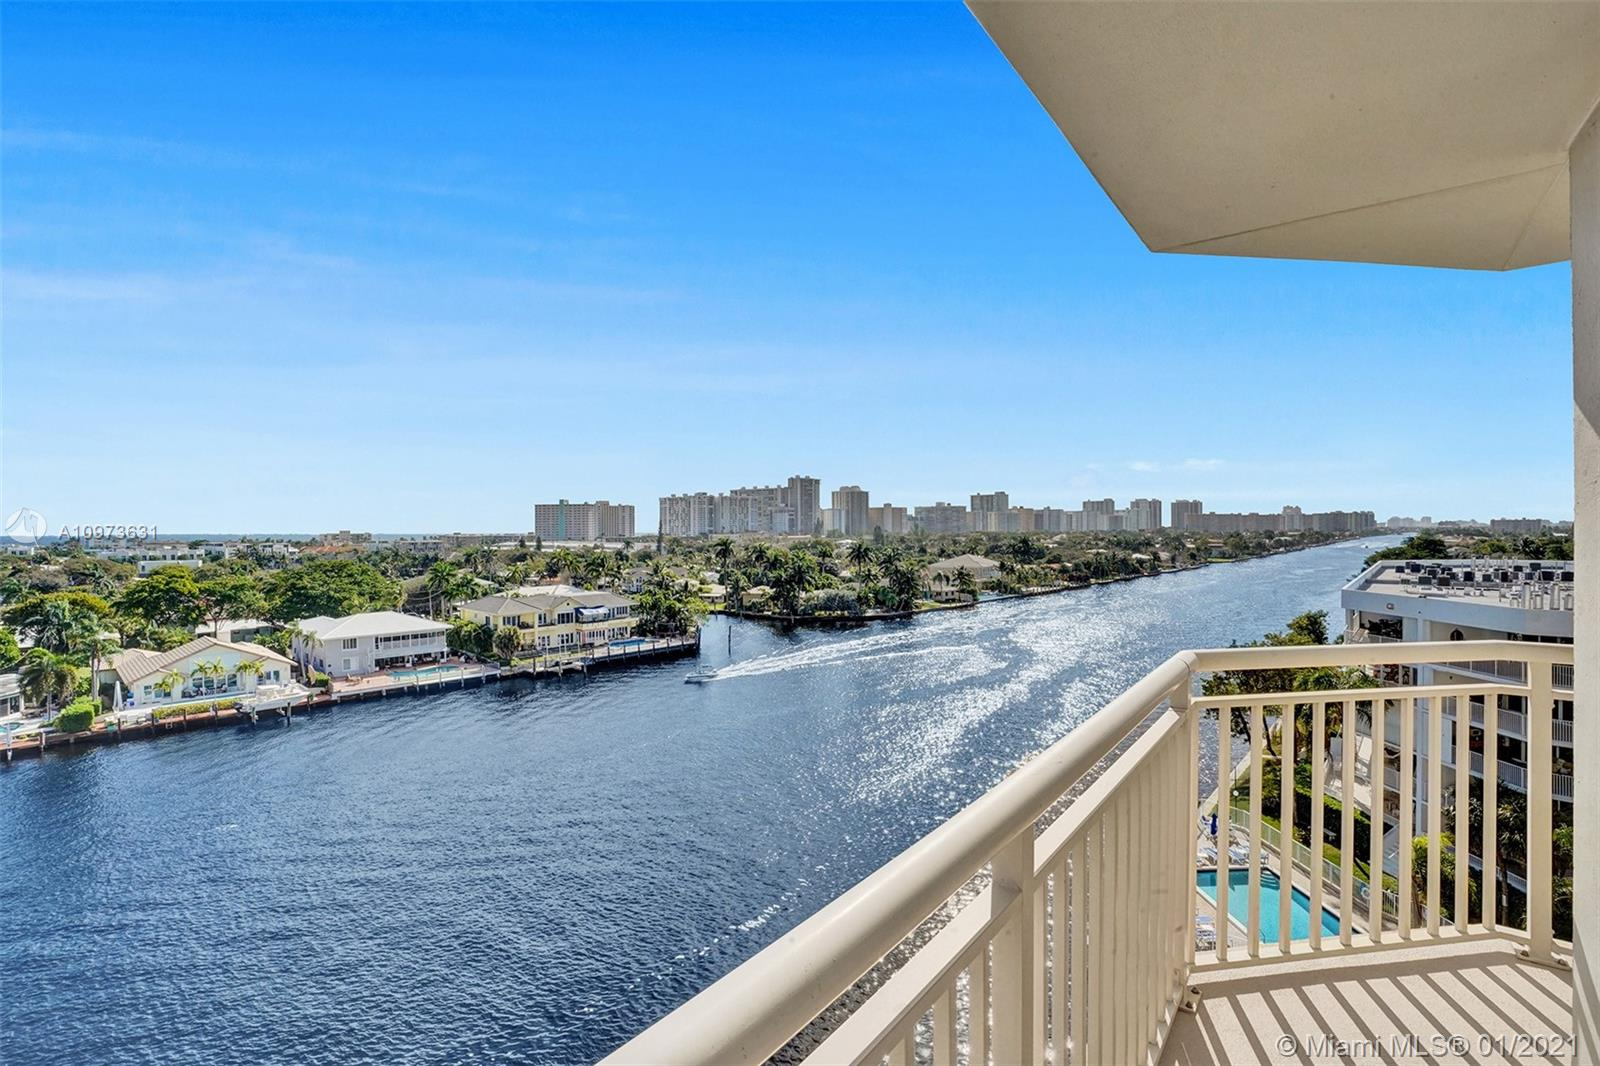 Experience one of the finest Intracoastal waterfront views in Fort Lauderdale.Enjoy stunning sunrise over the ocean views from your large open balcony.This premium,rare 2 bedroom plus den double unit offers 2702 sq ft of living space & a spacious corner master suite w/endless waterfront views.Need a home office, you got it- this unit is all set up.Newly remodeled,beautiful bright kitchen, bamboo wood floors,stunning stone accent wall in dining area,2wraparound balconies,2 garage parking spaces and high-impact glass throughout.Luxury amenities include heated pool,BBQ & newly renovated fitness room. Bring your boat!There are two very large deep water docks.Pet friendly property.South Florida's finest location,this private SE corner unit with breathtaking views w/mins to Lauderdale By The Sea